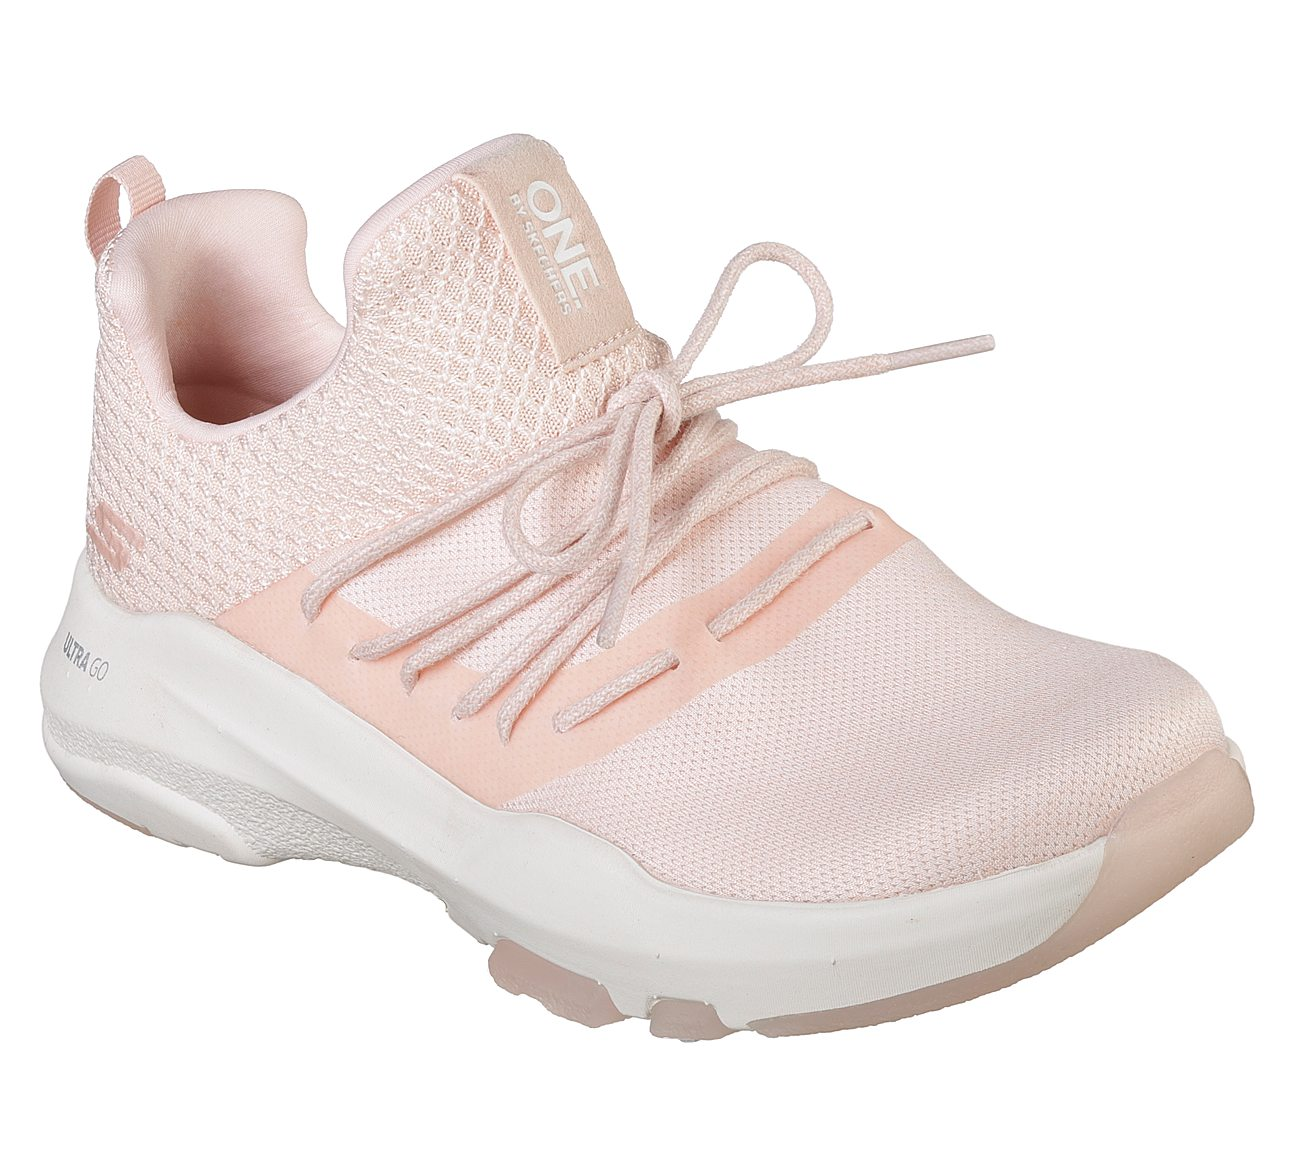 auditoría Bastante Inclinarse  Buy SKECHERS Skechers ONE Element Ultra Skechers Performance Shoes